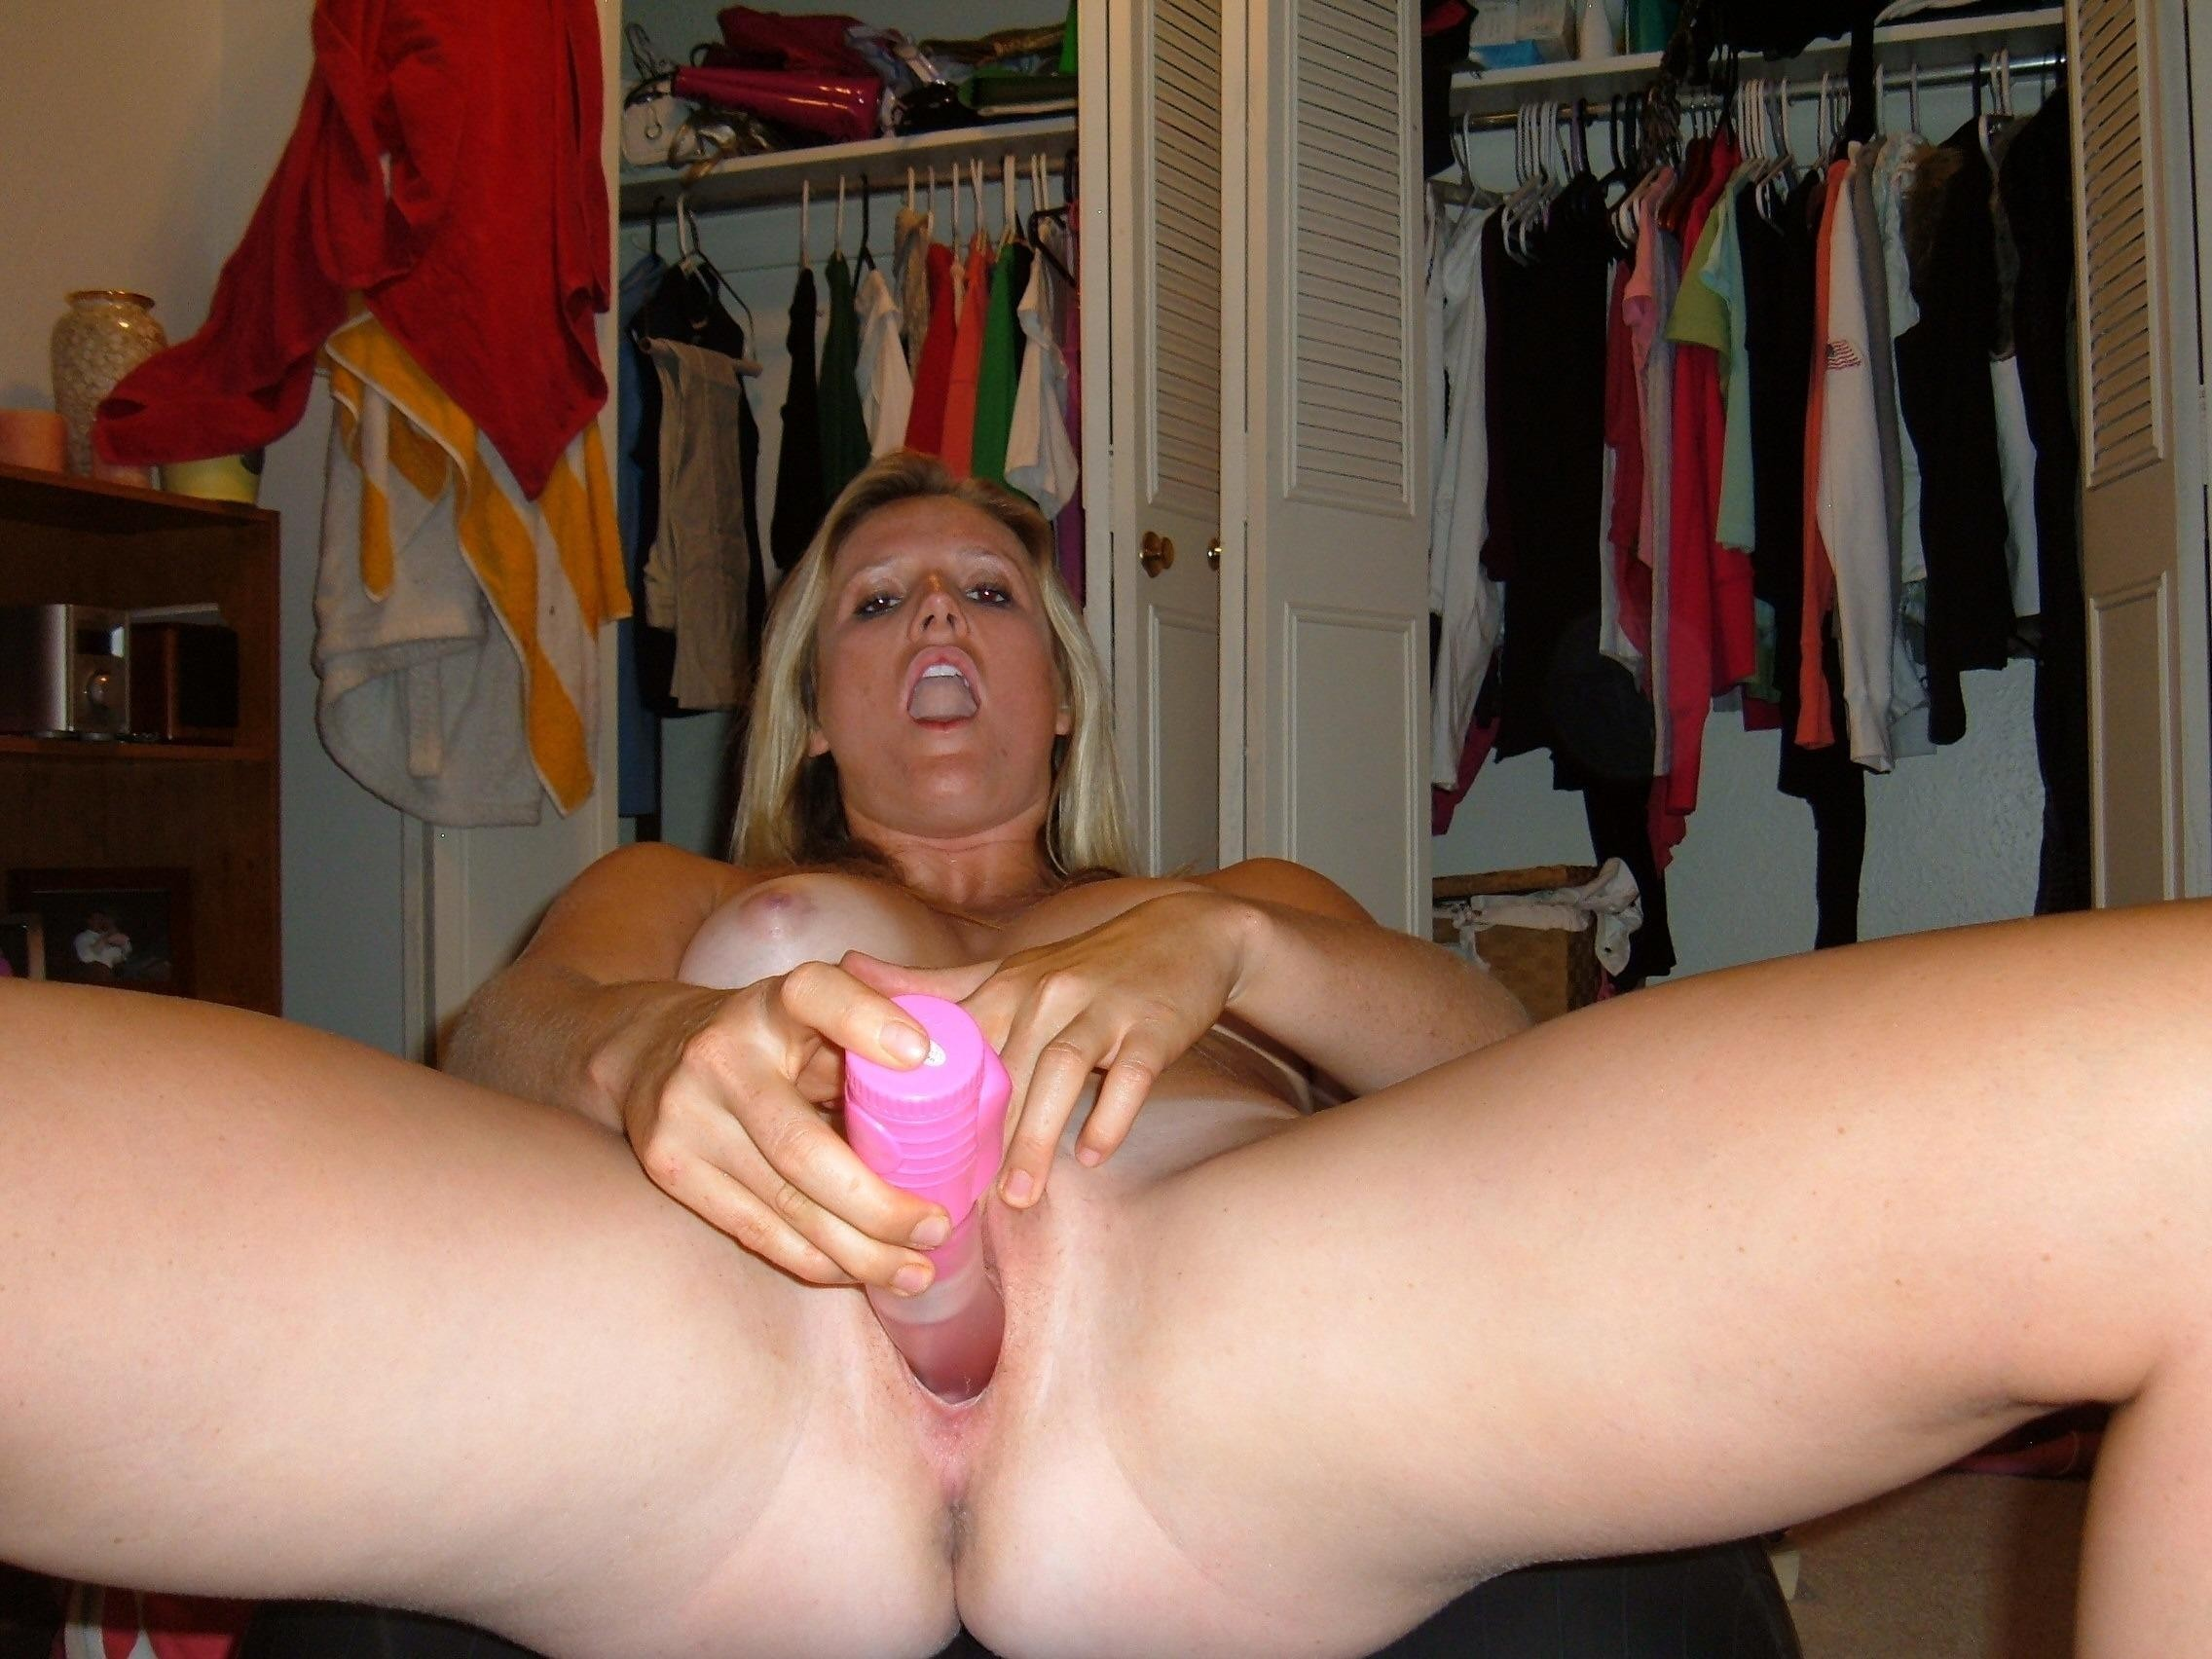 Naked Girlfriend Stretches For Toys